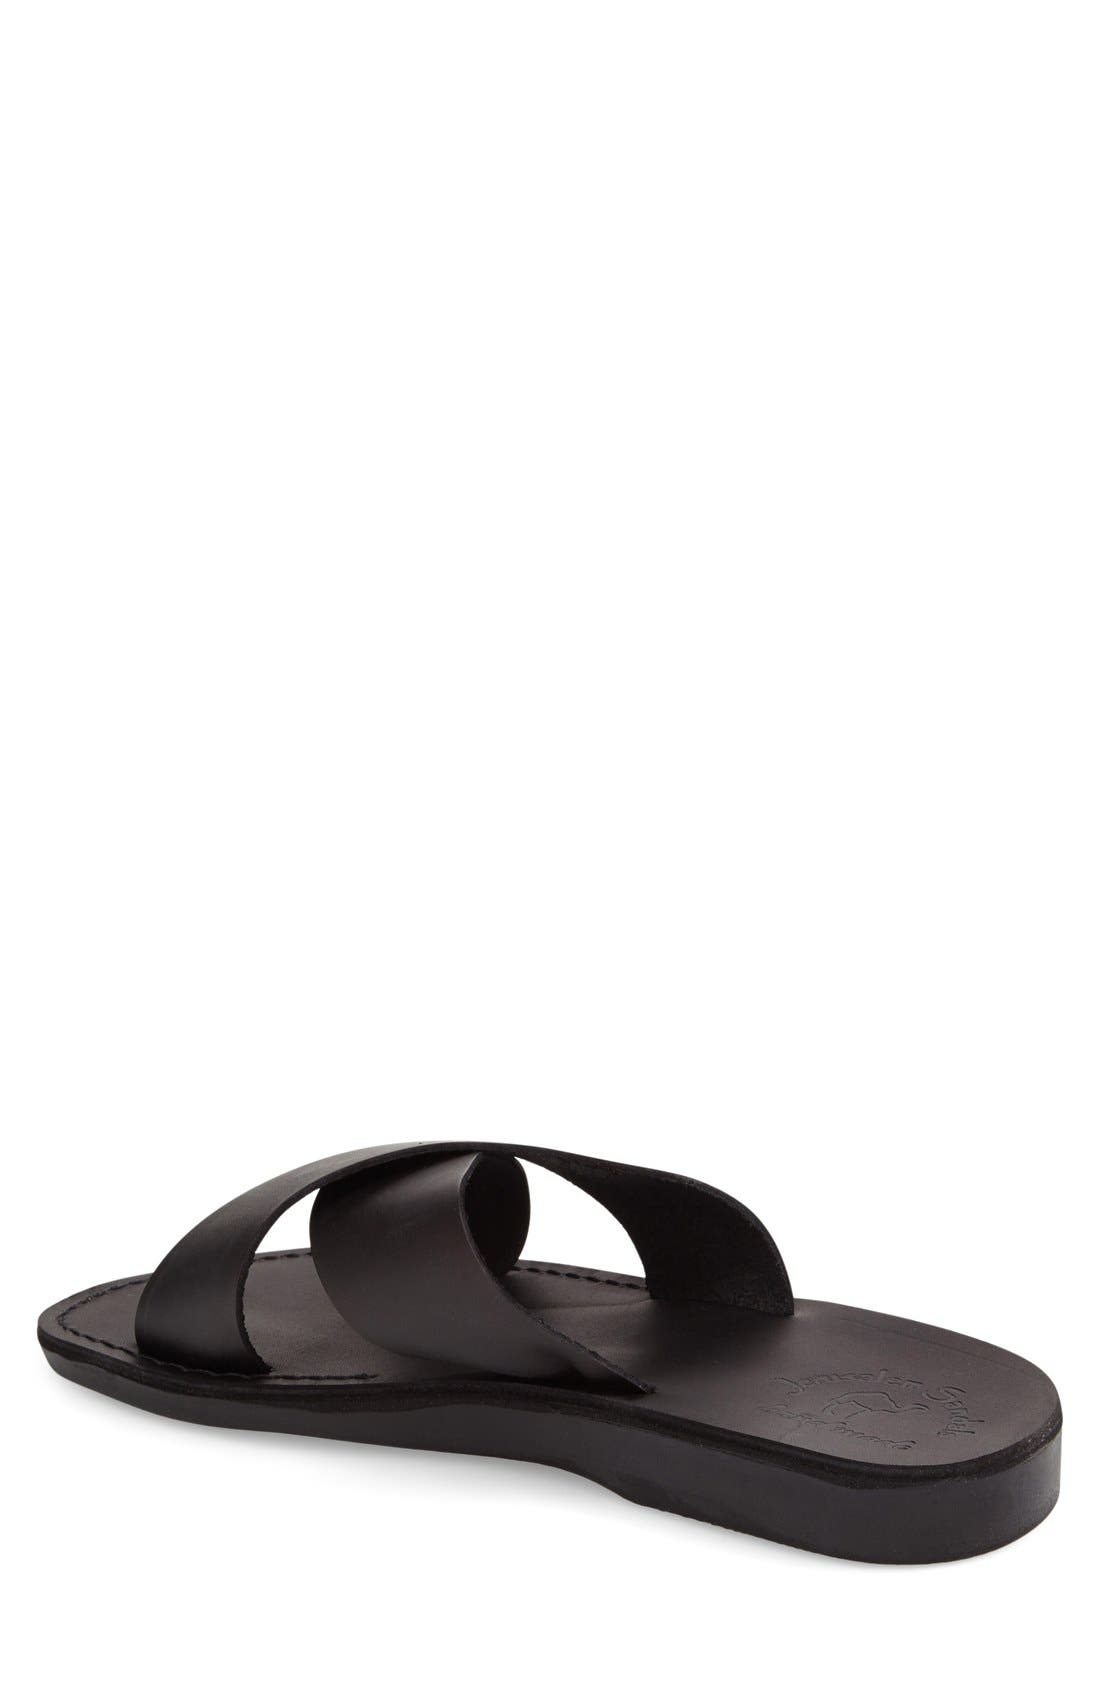 Alternate Image 2  - Jerusalem Sandals 'Elan' Slide Sandal (Men)